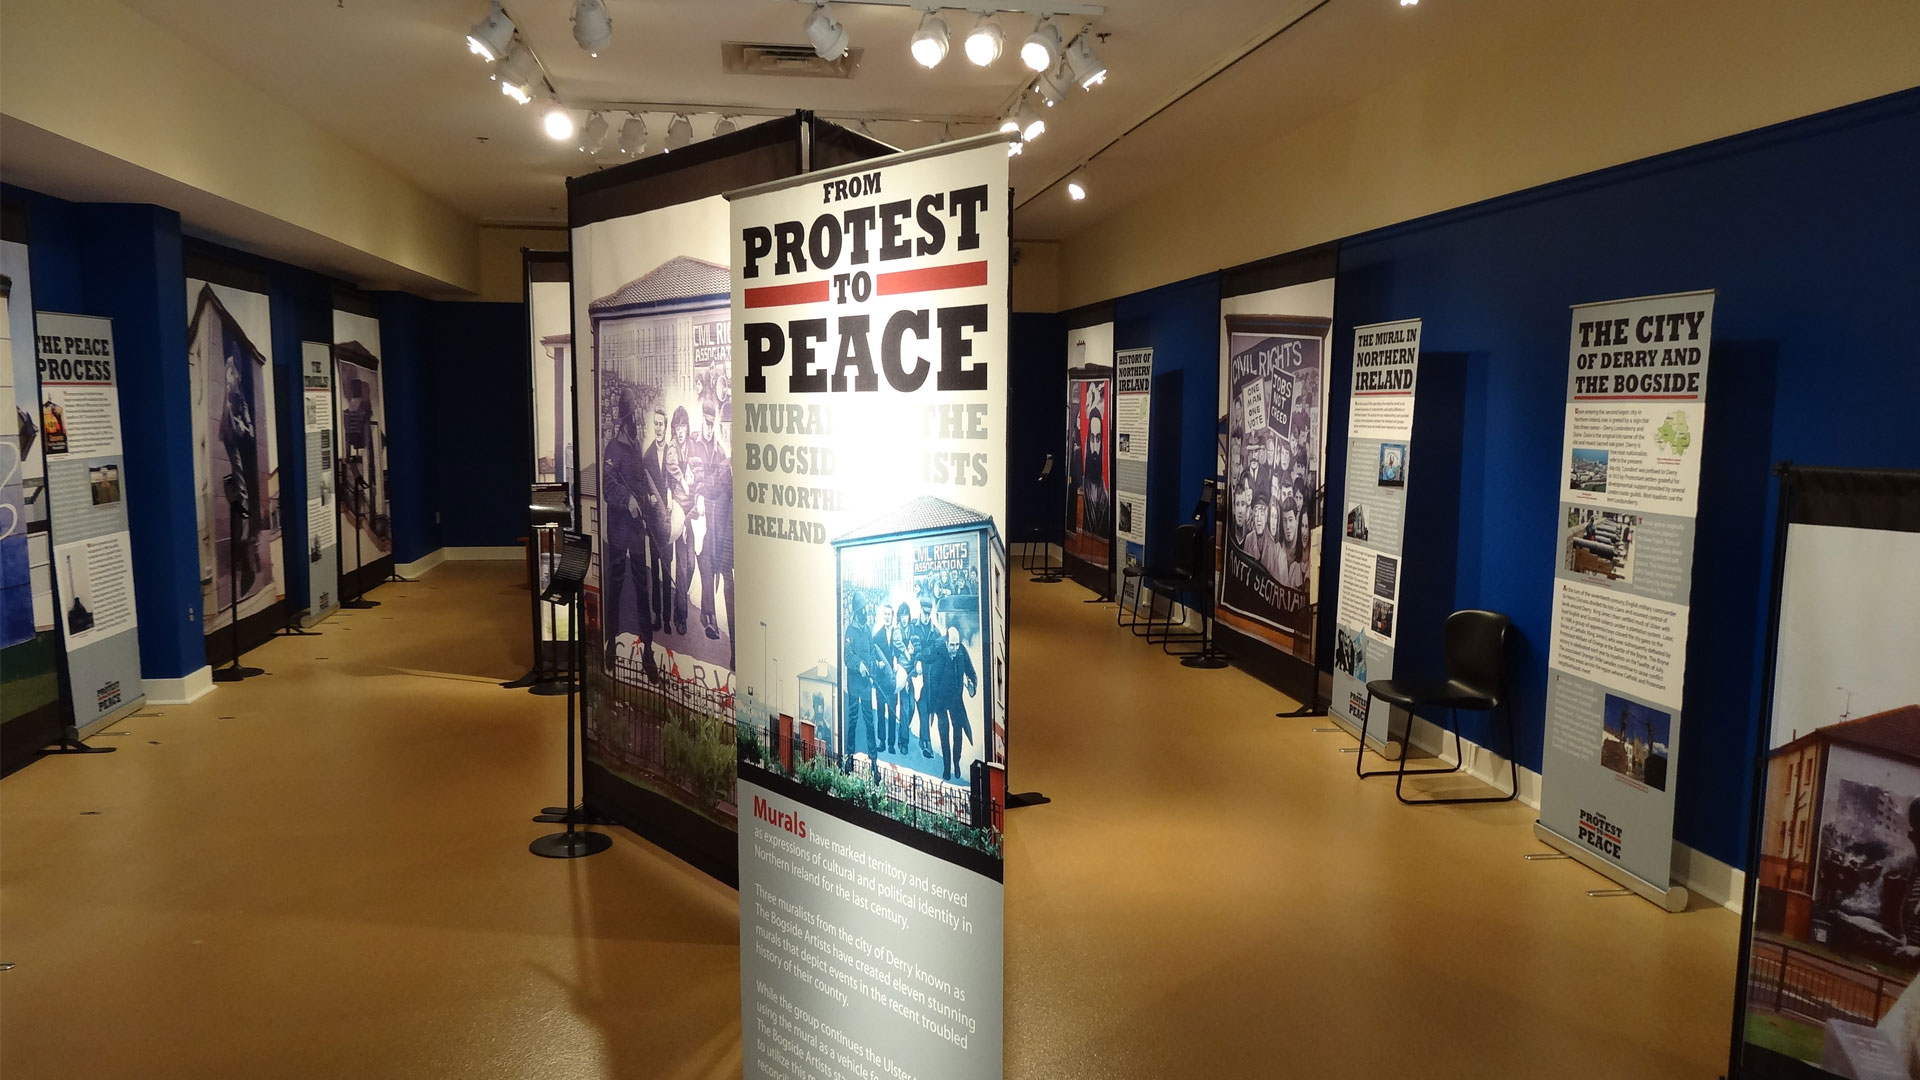 From Protest to Peace overview photo